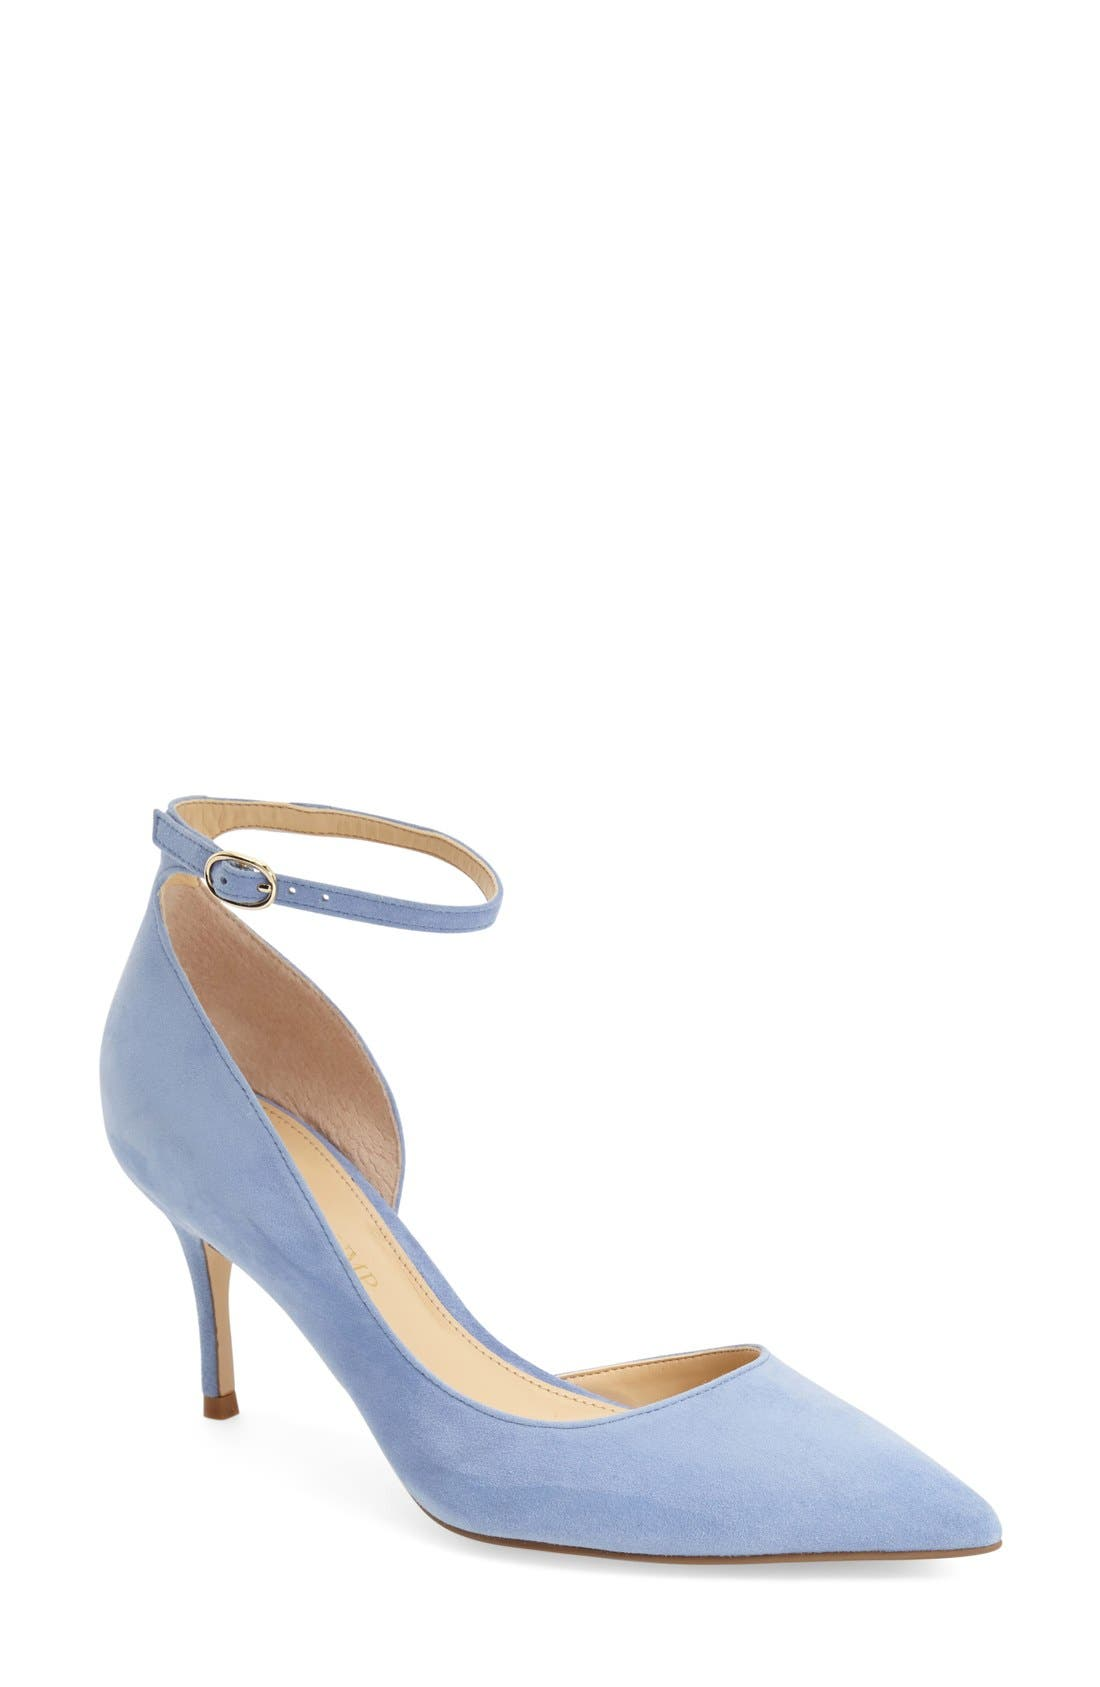 Alternate Image 1 Selected - Ivanka Trump 'Brita' Ankle Strap Pointy Toe Pump (Women)